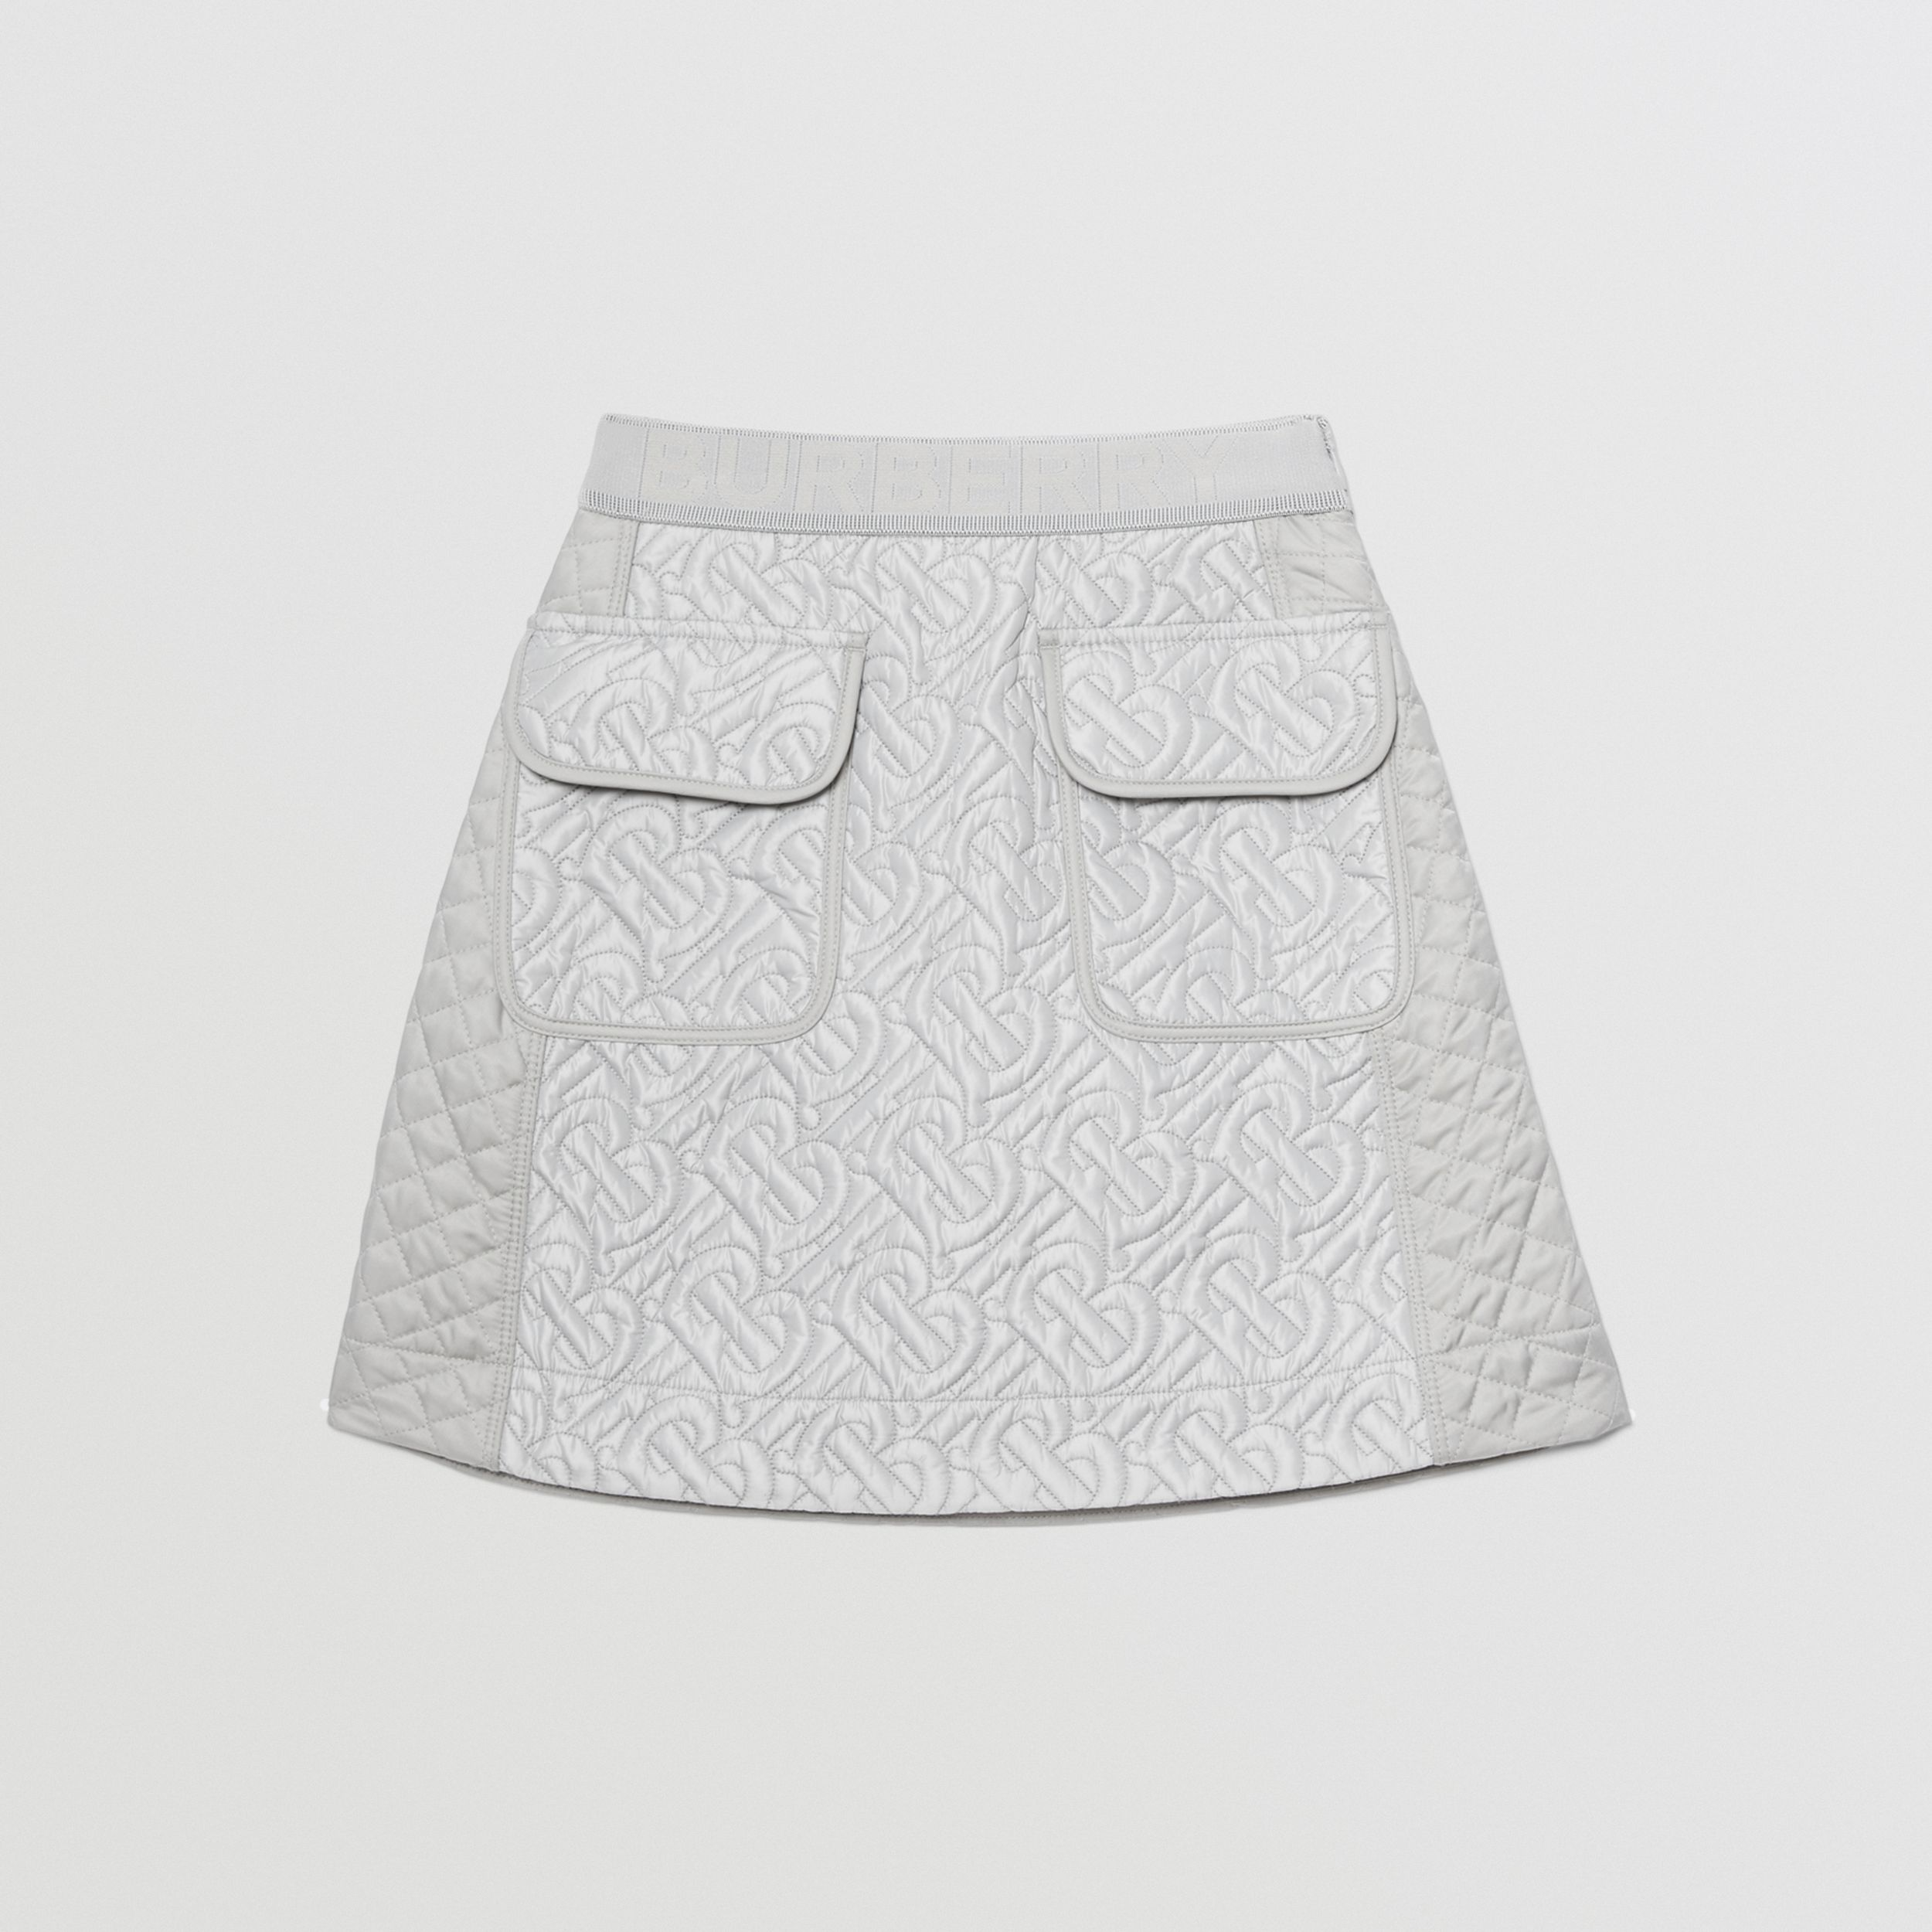 Monogram Quilted Panel Recycled Polyester Skirt in Light Grey | Burberry - 1